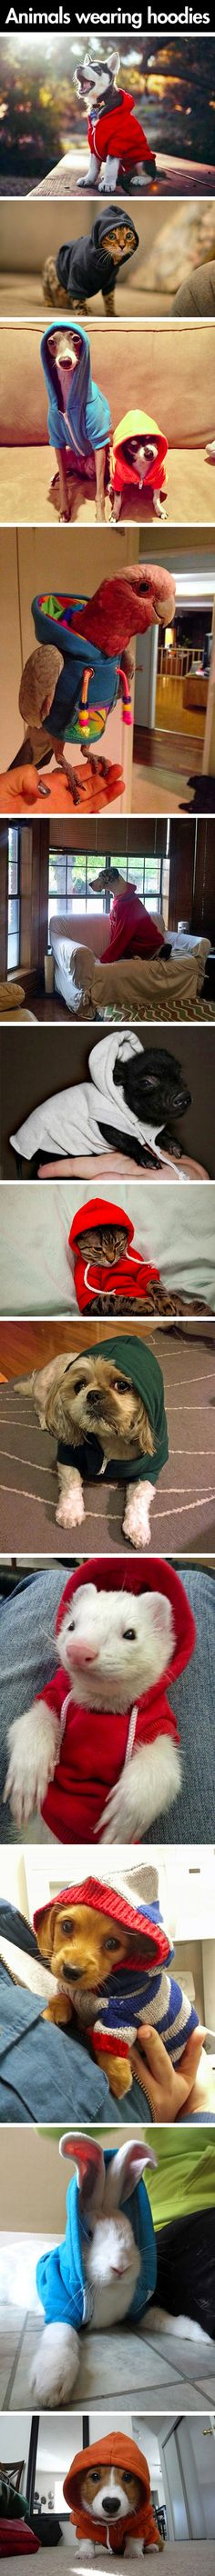 Hoodies make everything better.